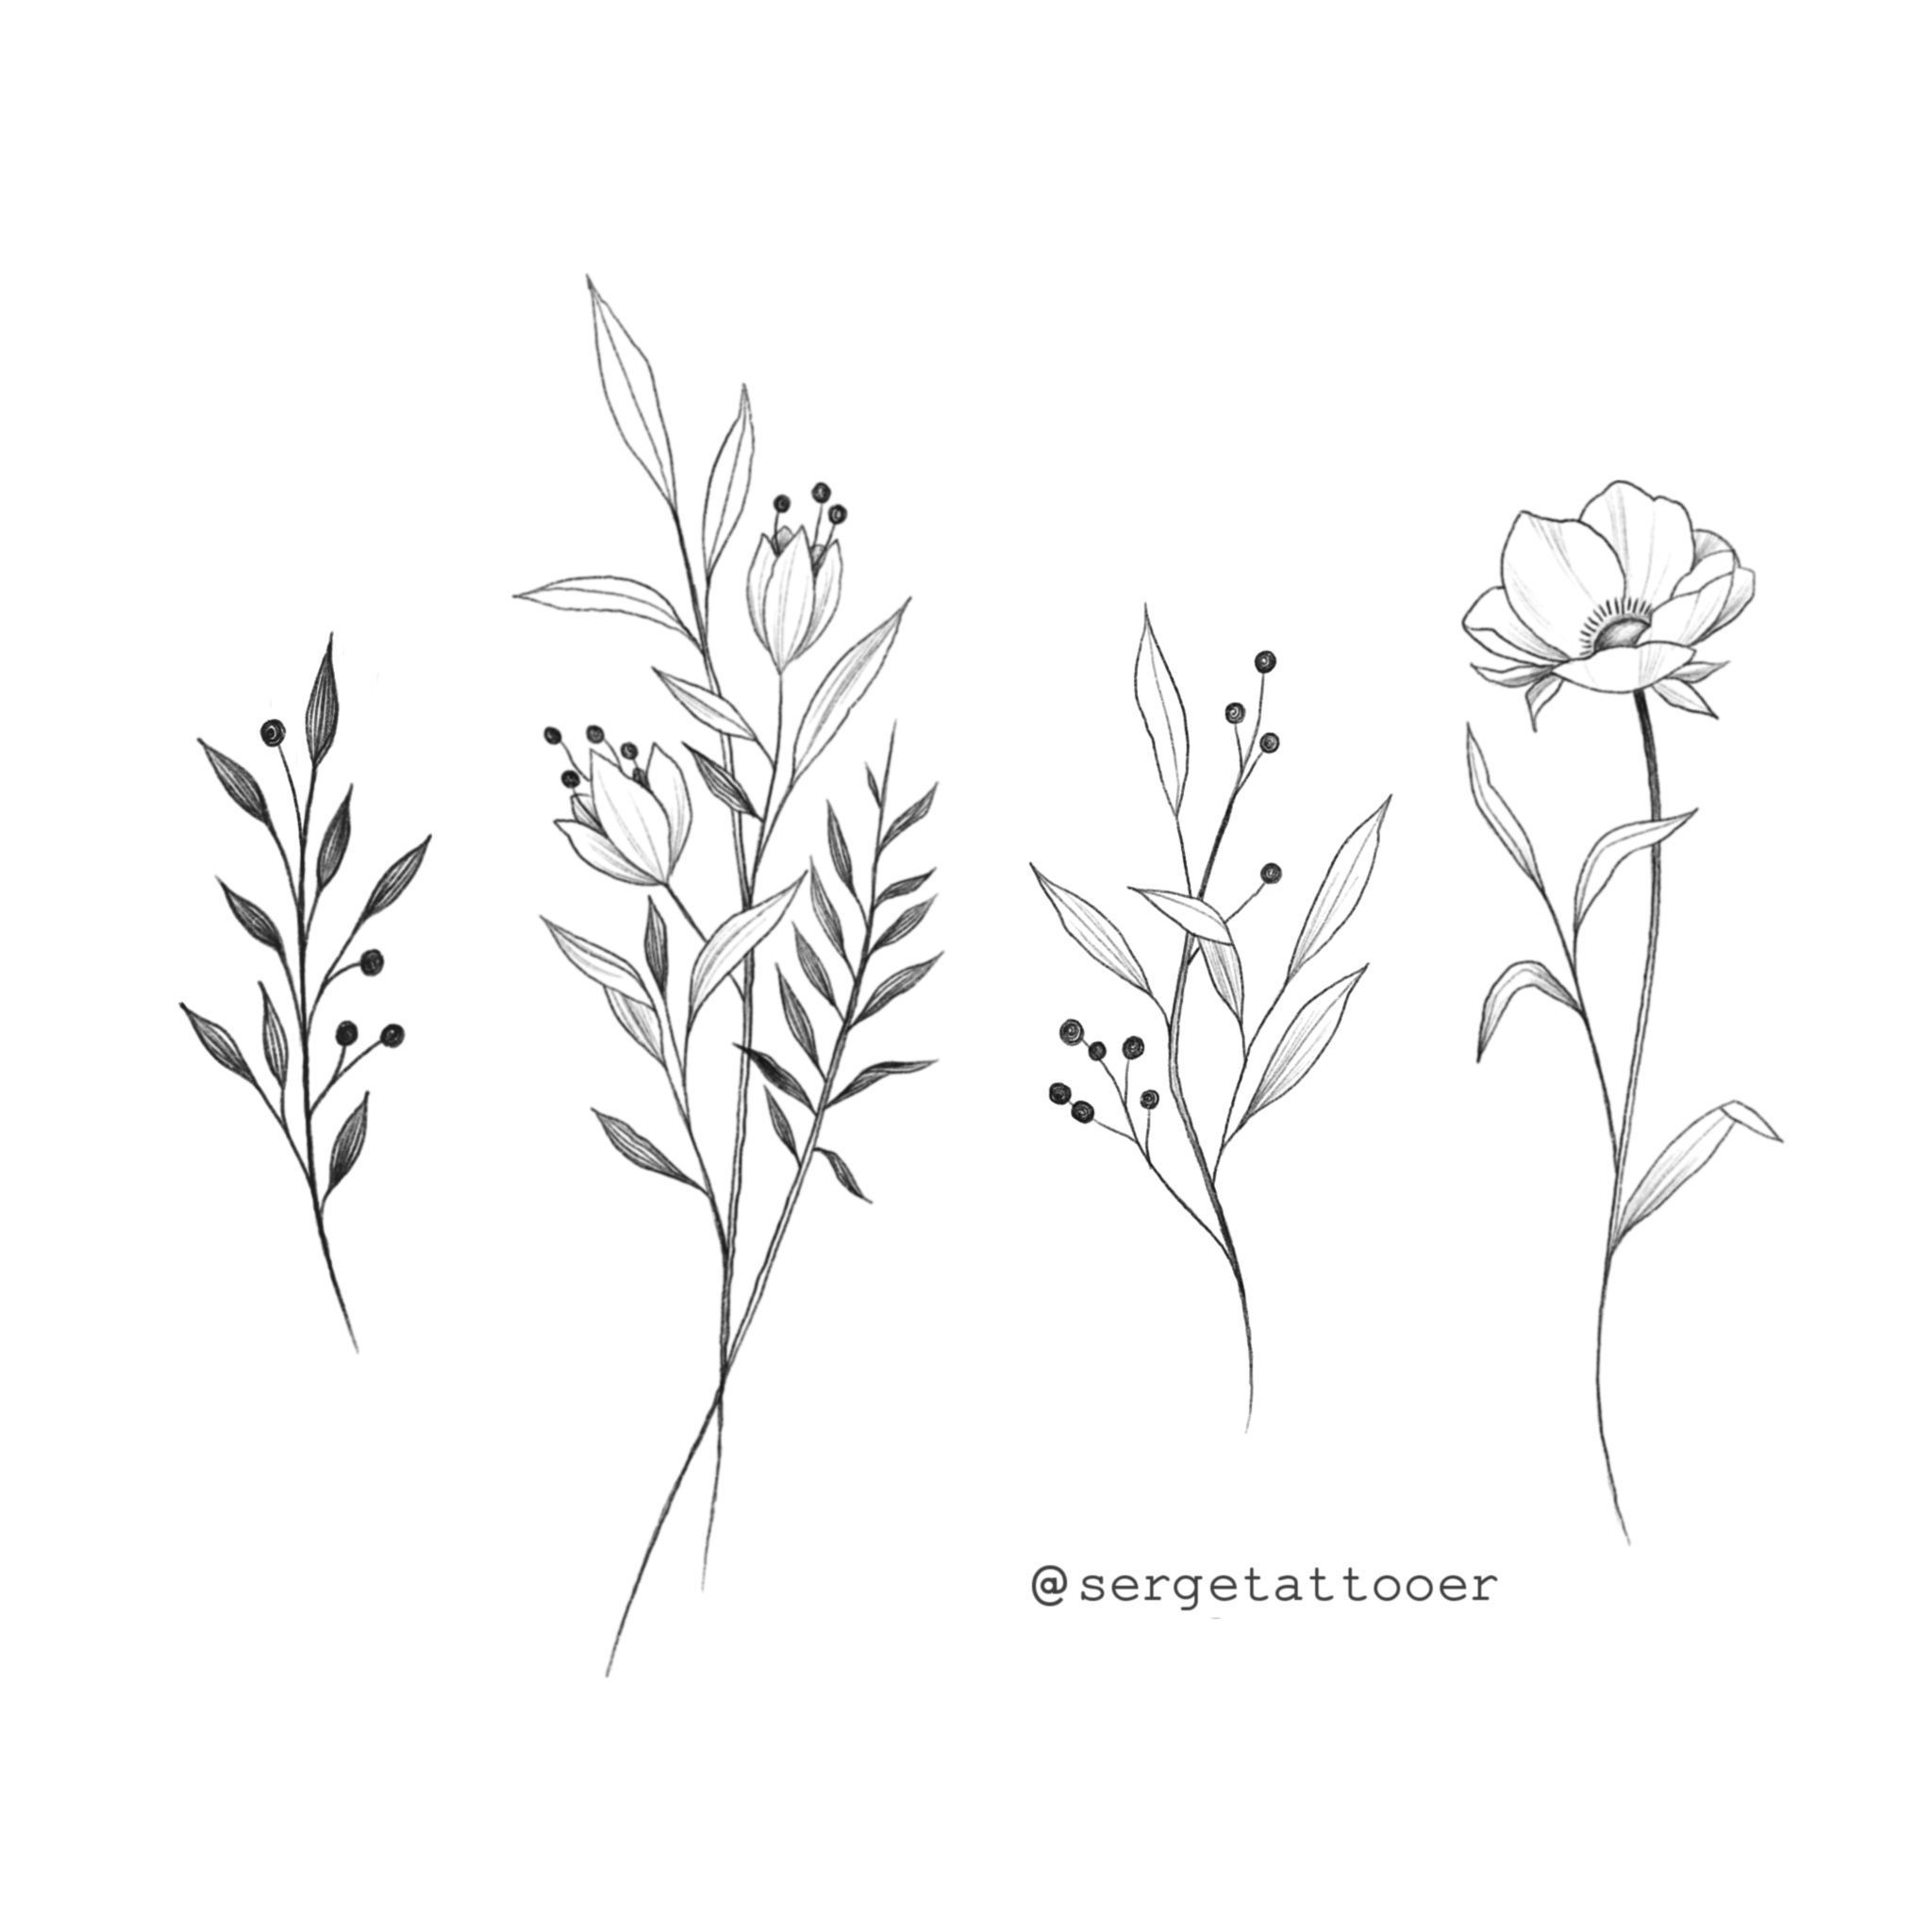 Mohnblume Unbedeutende Zeichnungen Hollowen Hollowen Mohnblume Unbedeutende Zeichnungen In 2020 Flower Tattoo Designs Tattoos Sketch Inspiration